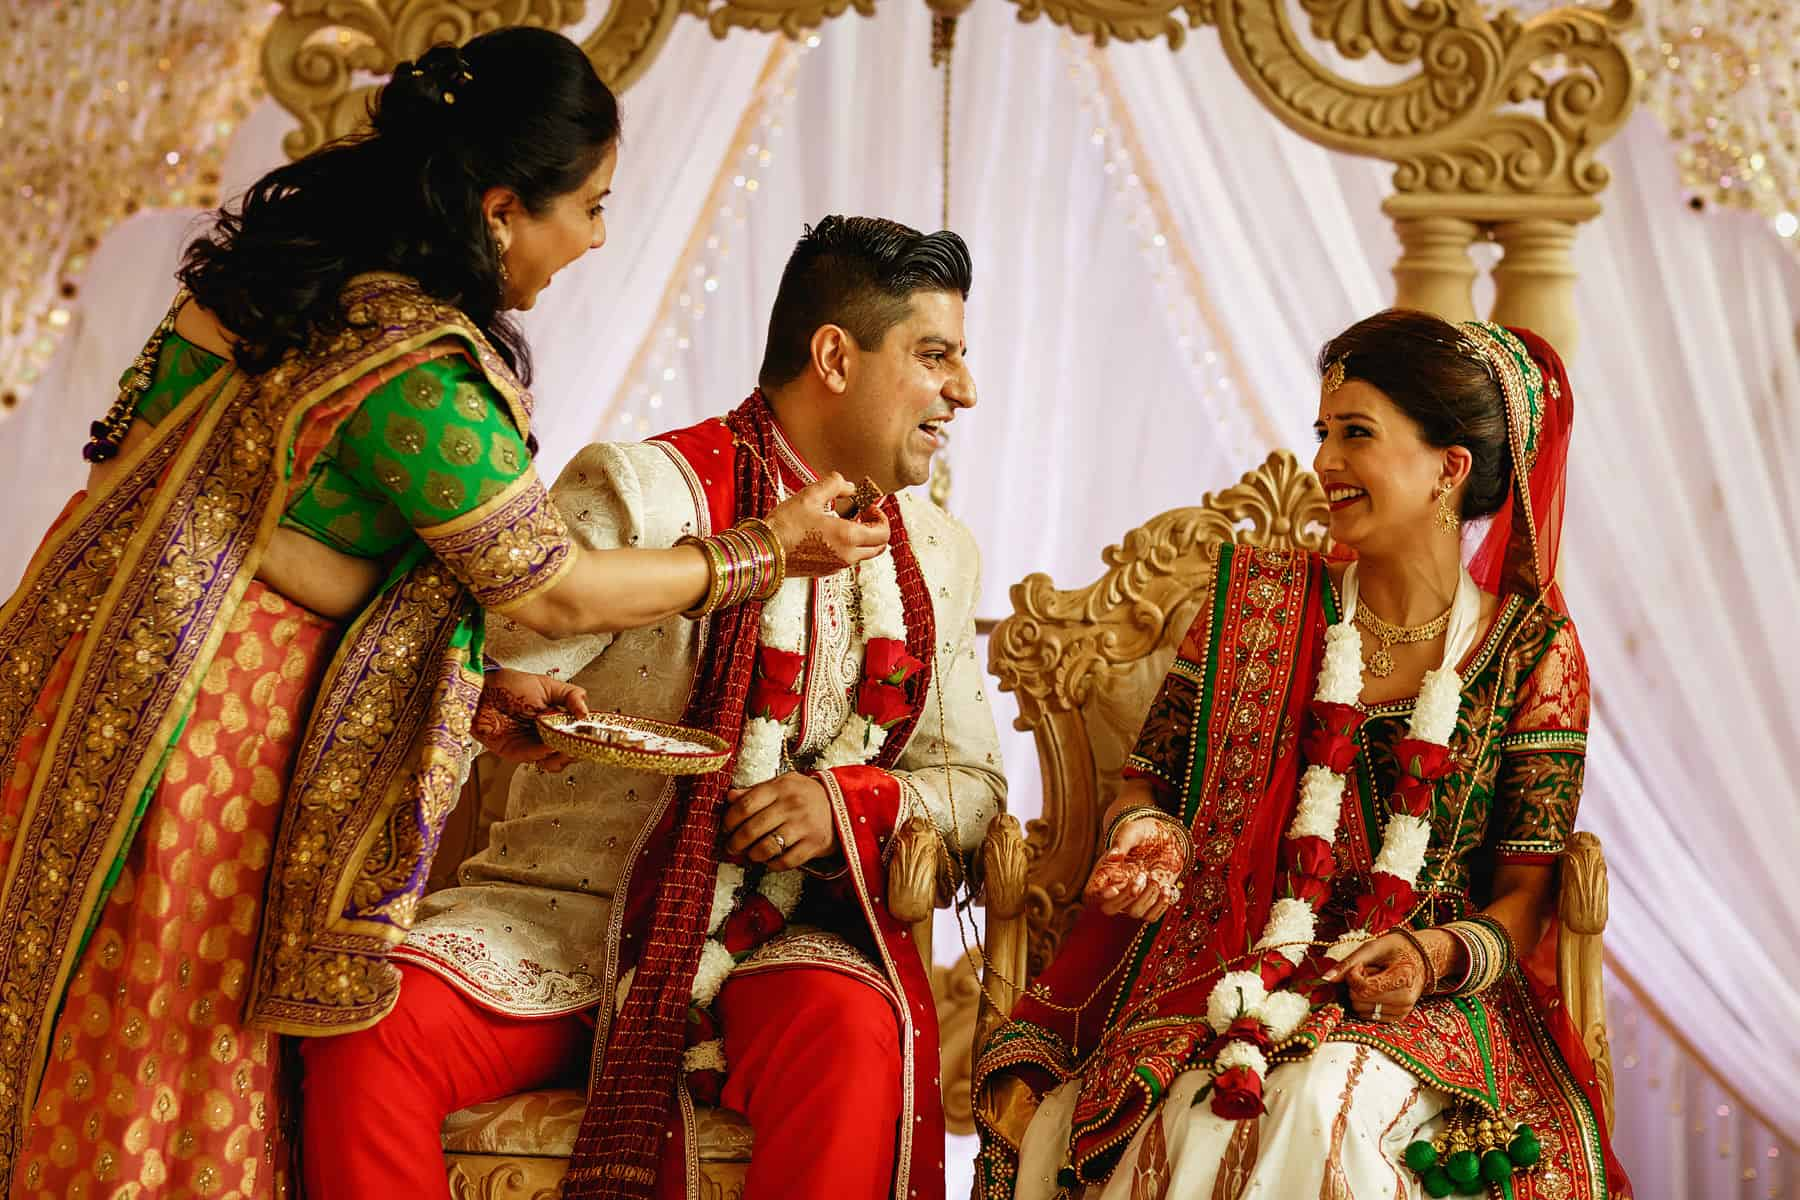 sattavis patidar centre hindu wedding